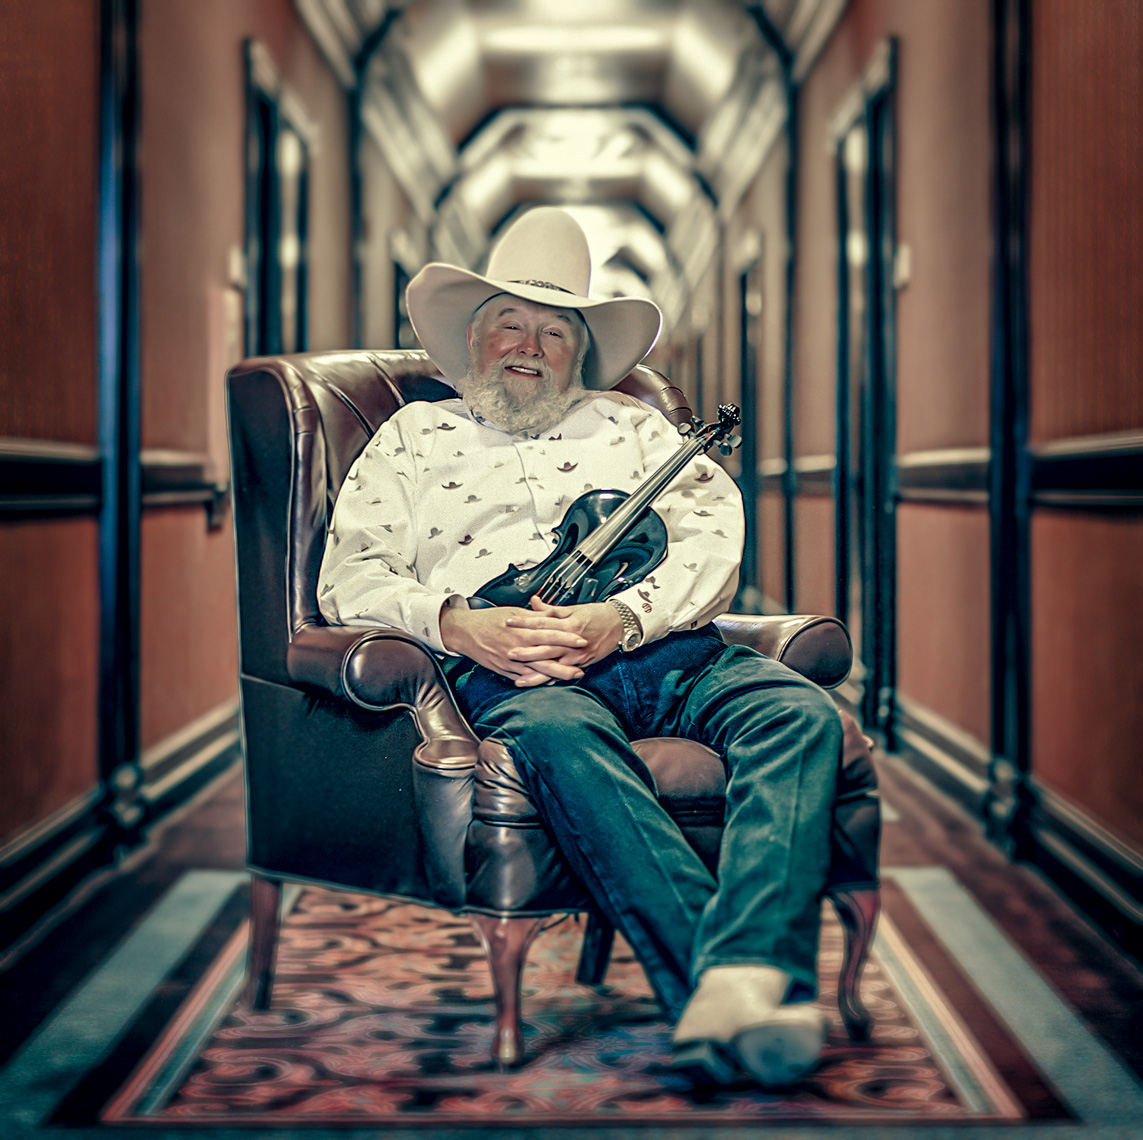 Charlie Daniels, country music legend during a publicity campaign in Las Vegas, NV.